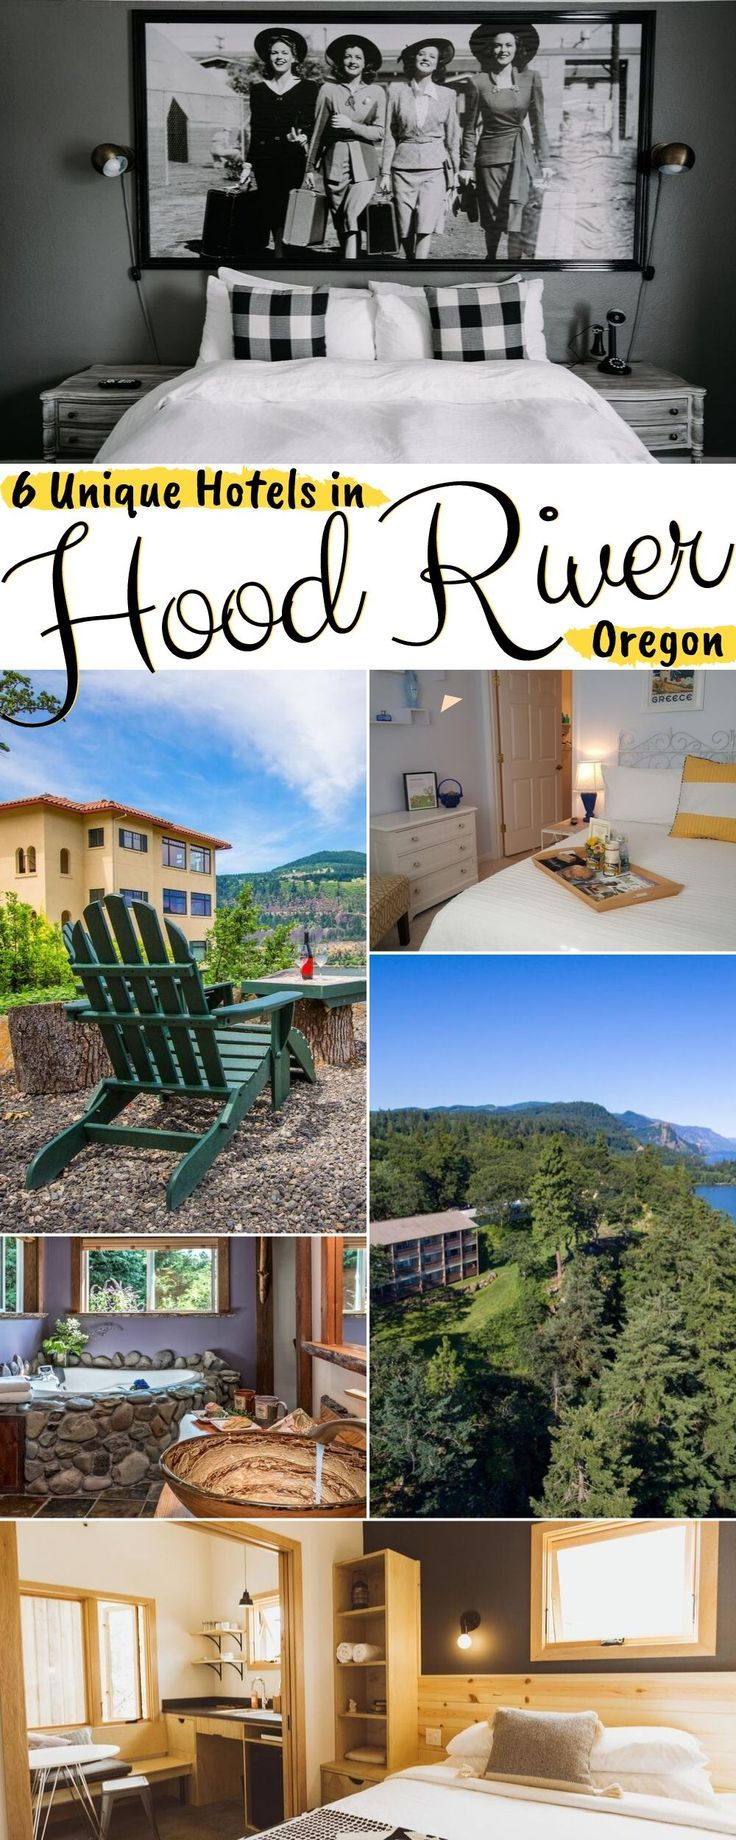 The 6 Best Hotels In And Around Hood River, Oregon